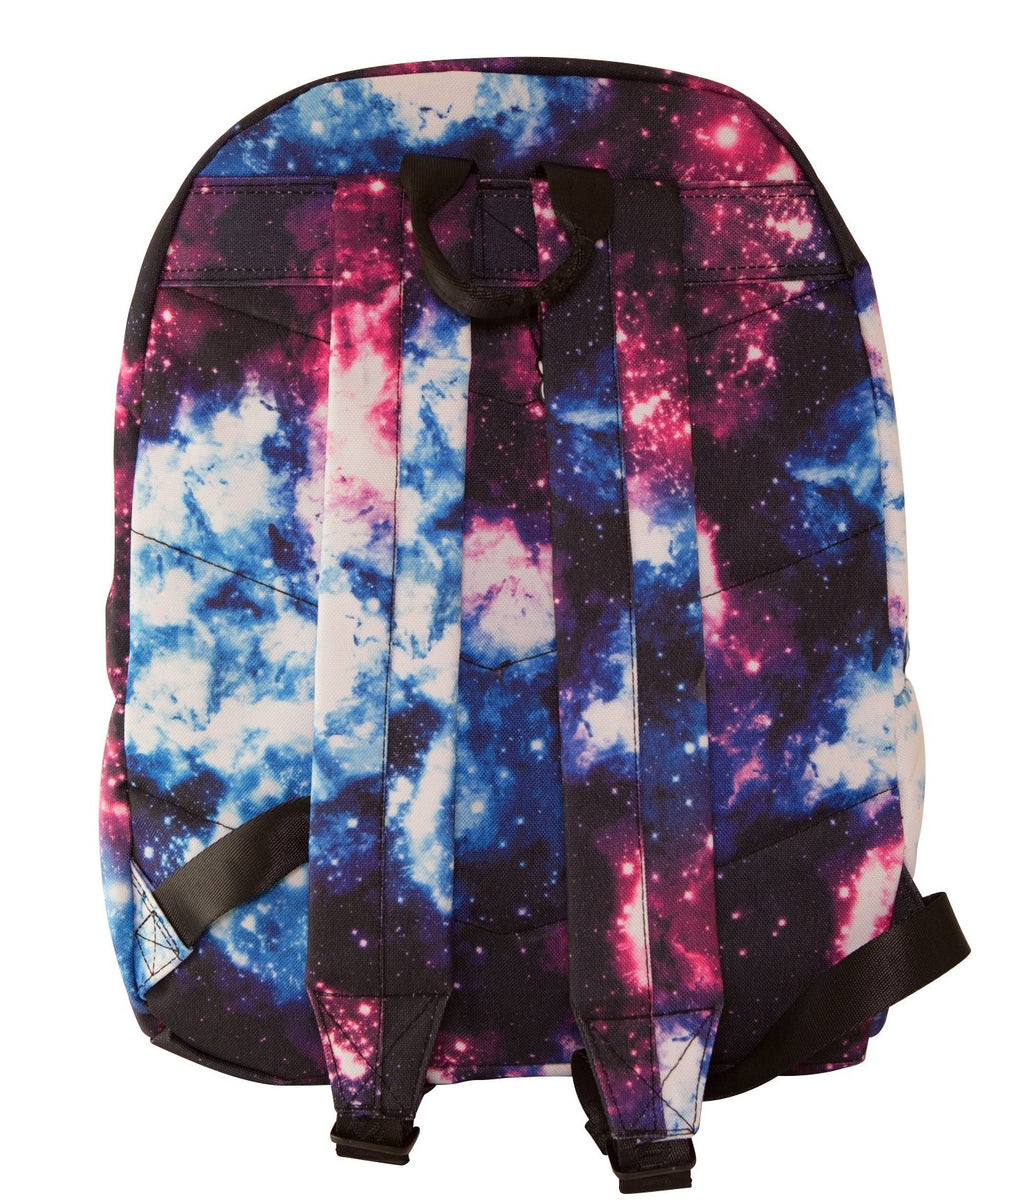 HYPE SPACE HUES BACKPACK RUCKSACK BAG - MULTI